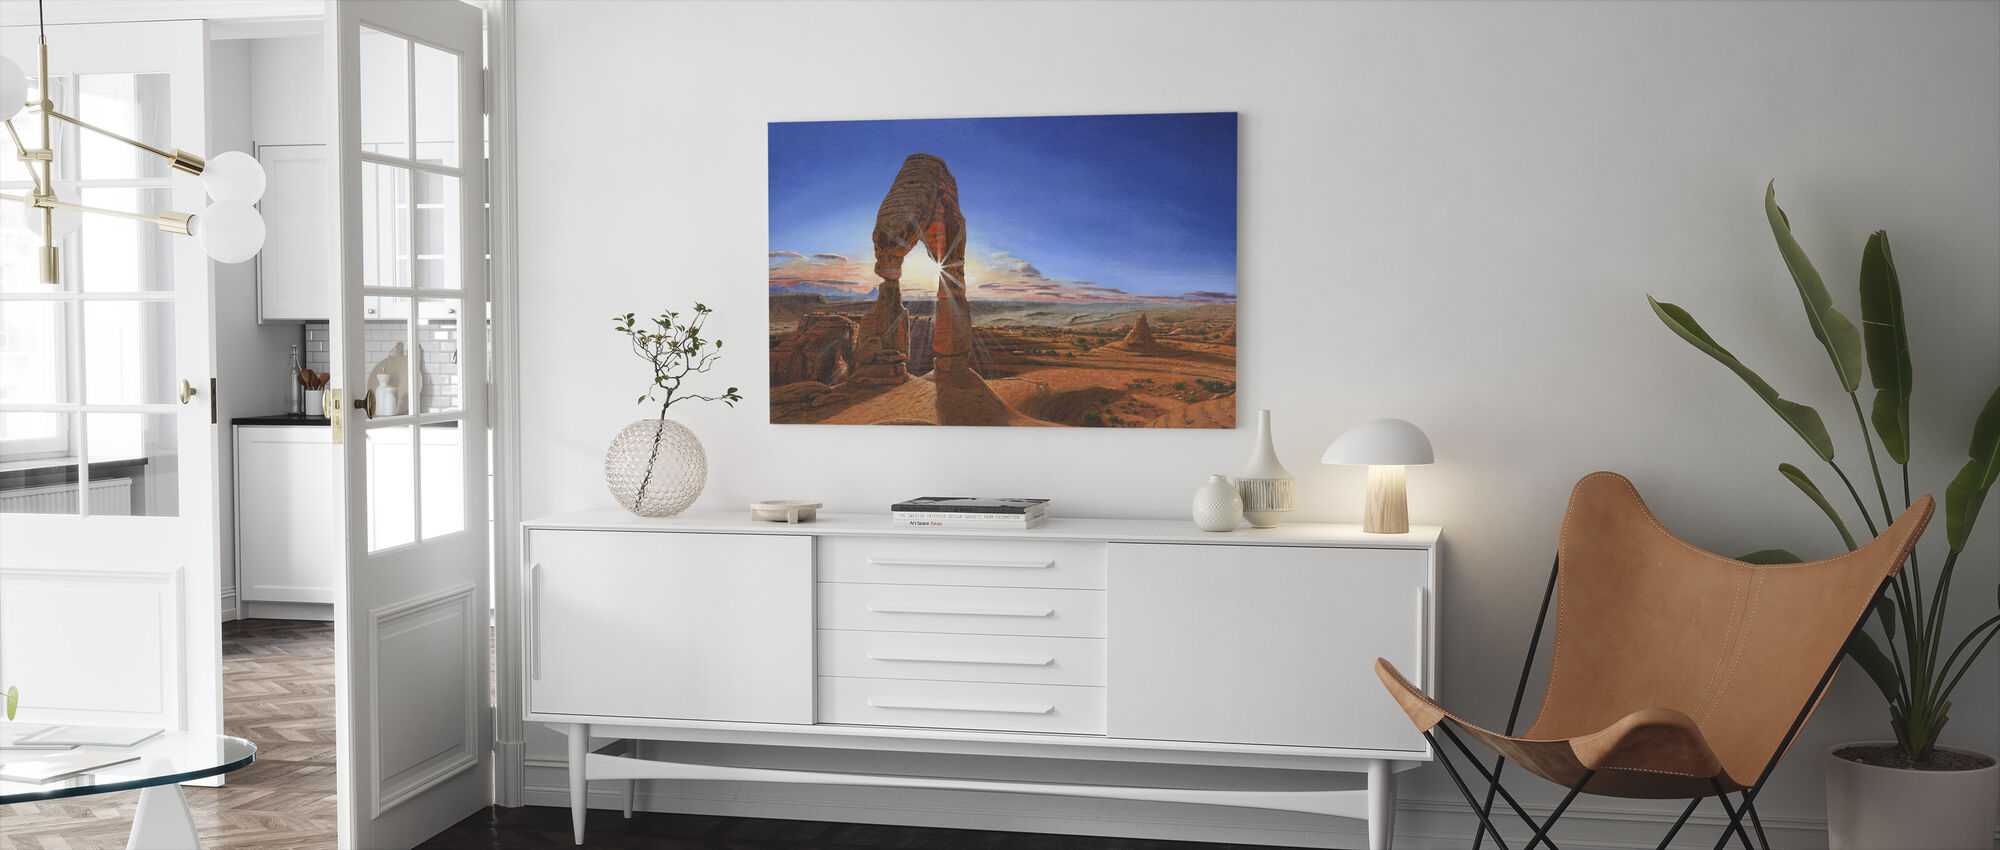 Sunset at Delicate Arch Utah - Canvas print - Living Room